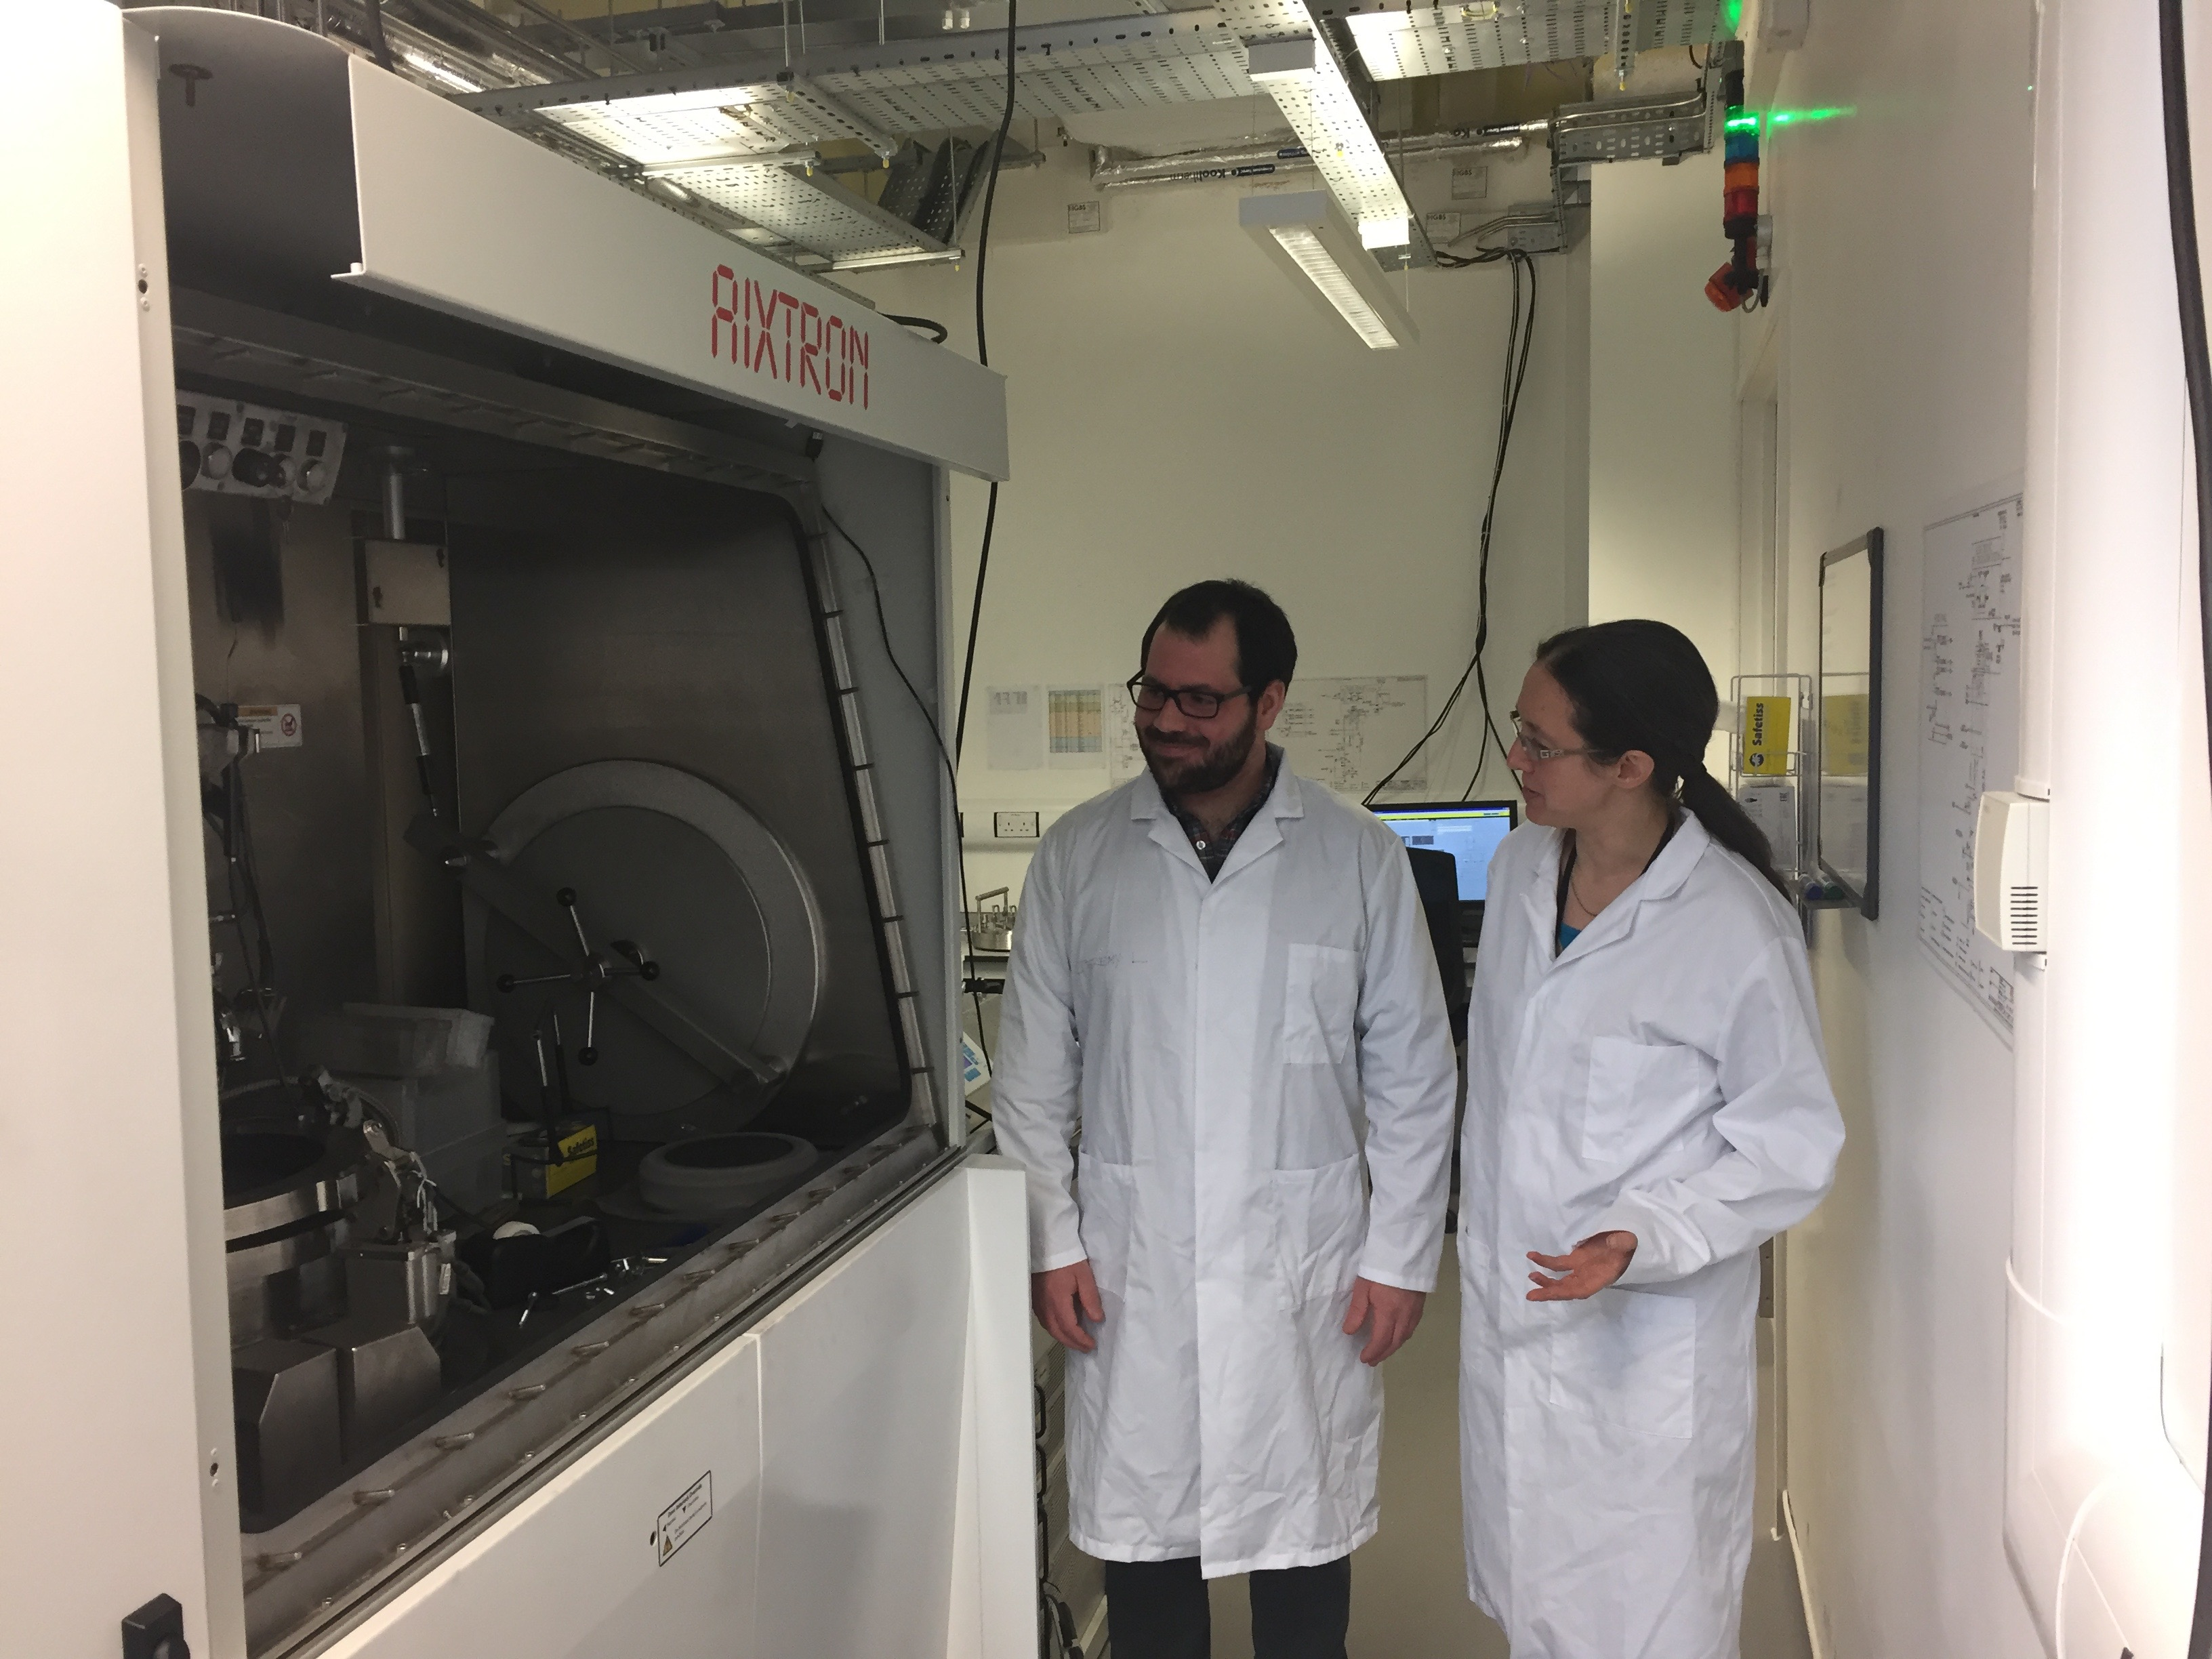 Rachel and Tom with a crystal growth system